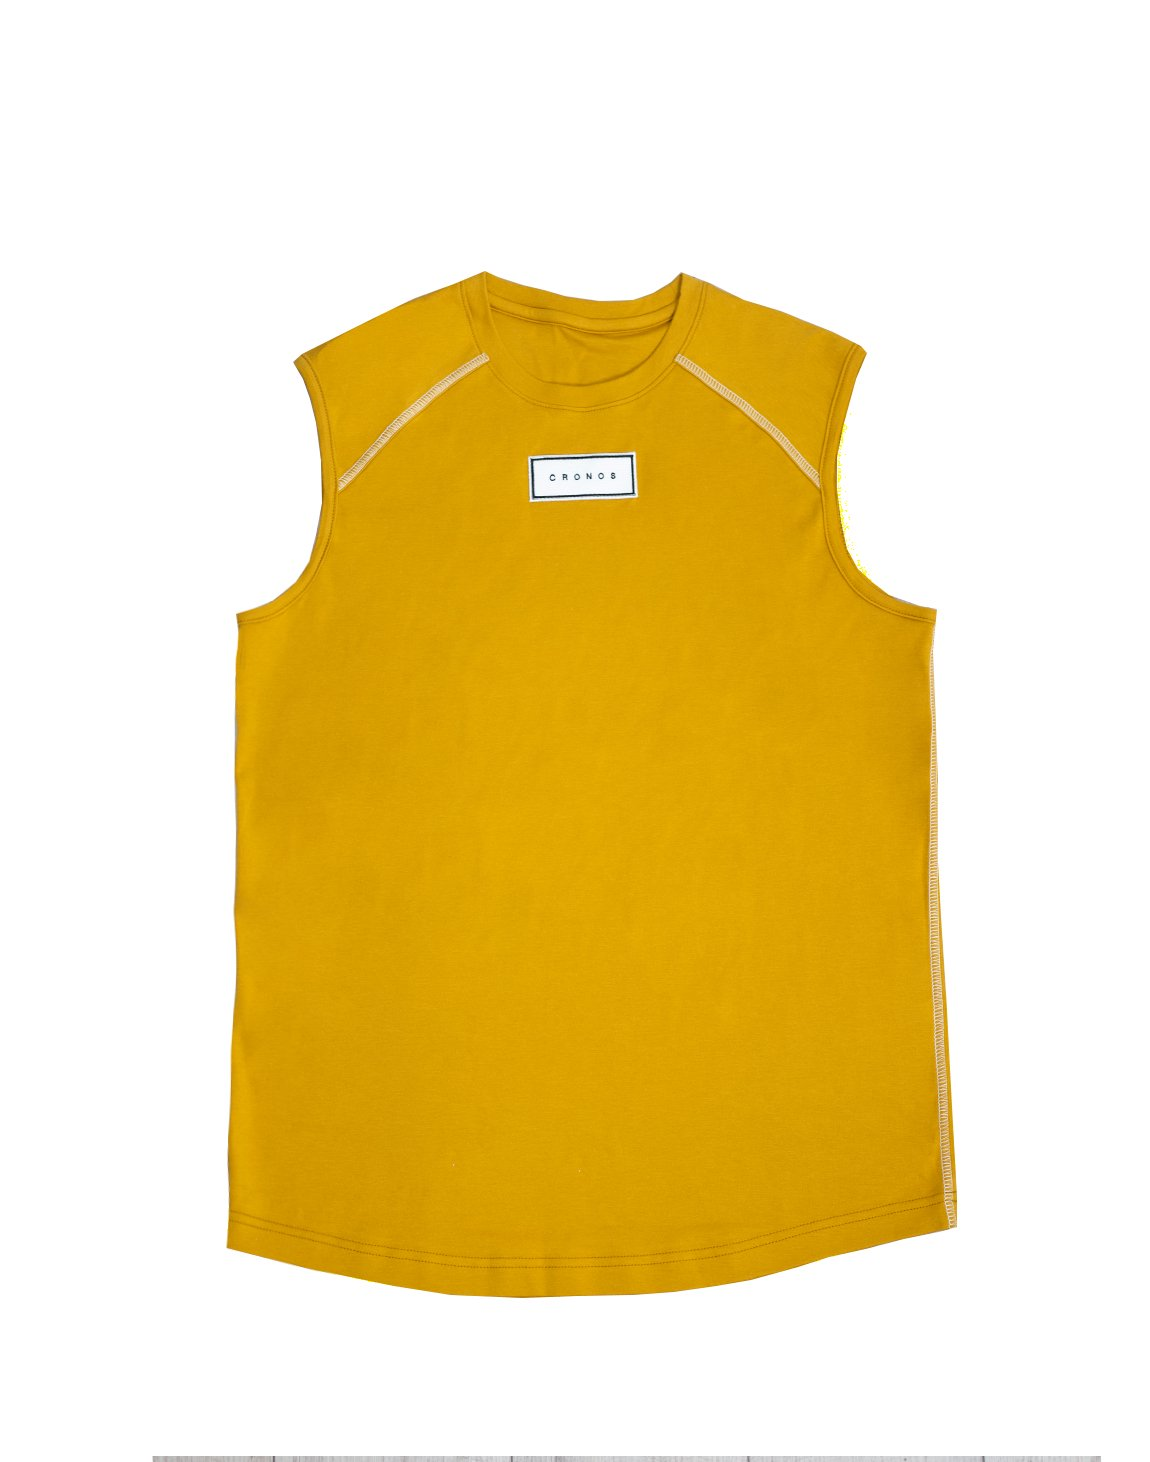 <img class='new_mark_img1' src='https://img.shop-pro.jp/img/new/icons55.gif' style='border:none;display:inline;margin:0px;padding:0px;width:auto;' />FRONT PATCH LOGO SLEEVELESS【YELLOW】